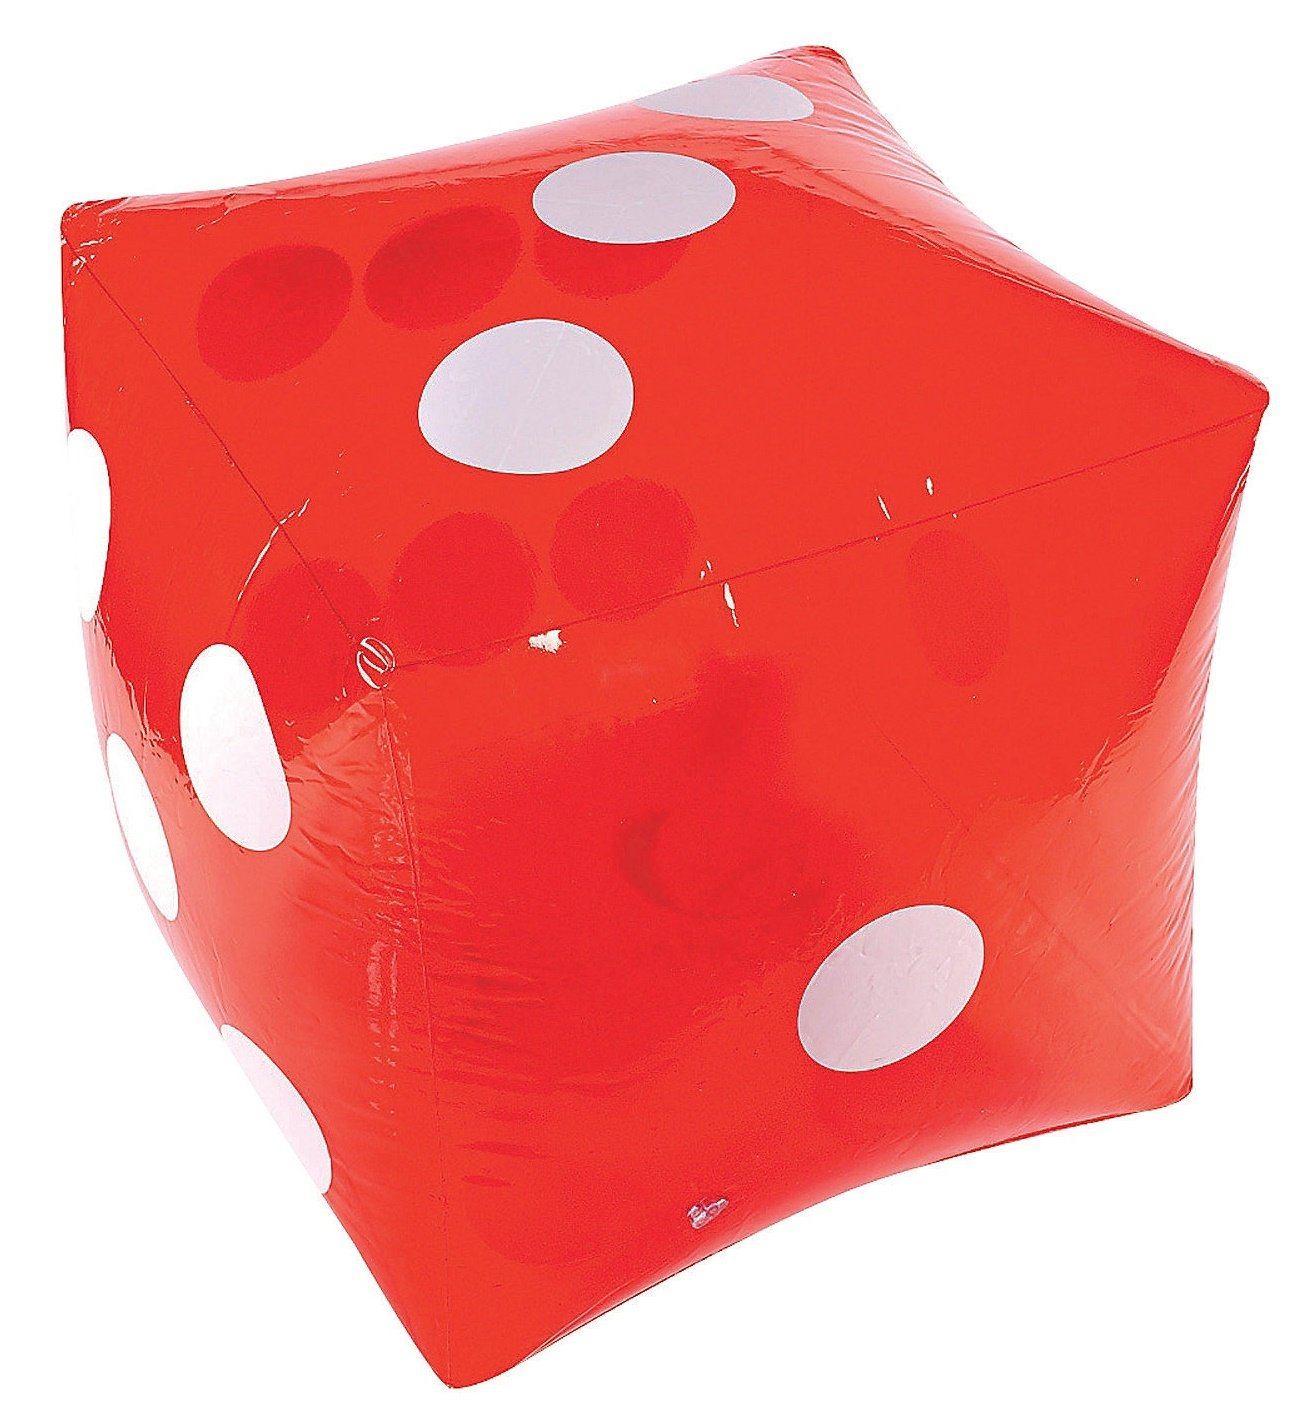 Huge 16 Inflatable Red Dice Party Decoration Favor Gag Prank Gift Casino Inflate Toy Buy Online In Botswana At Botswana Desertcart Com Productid 15026346